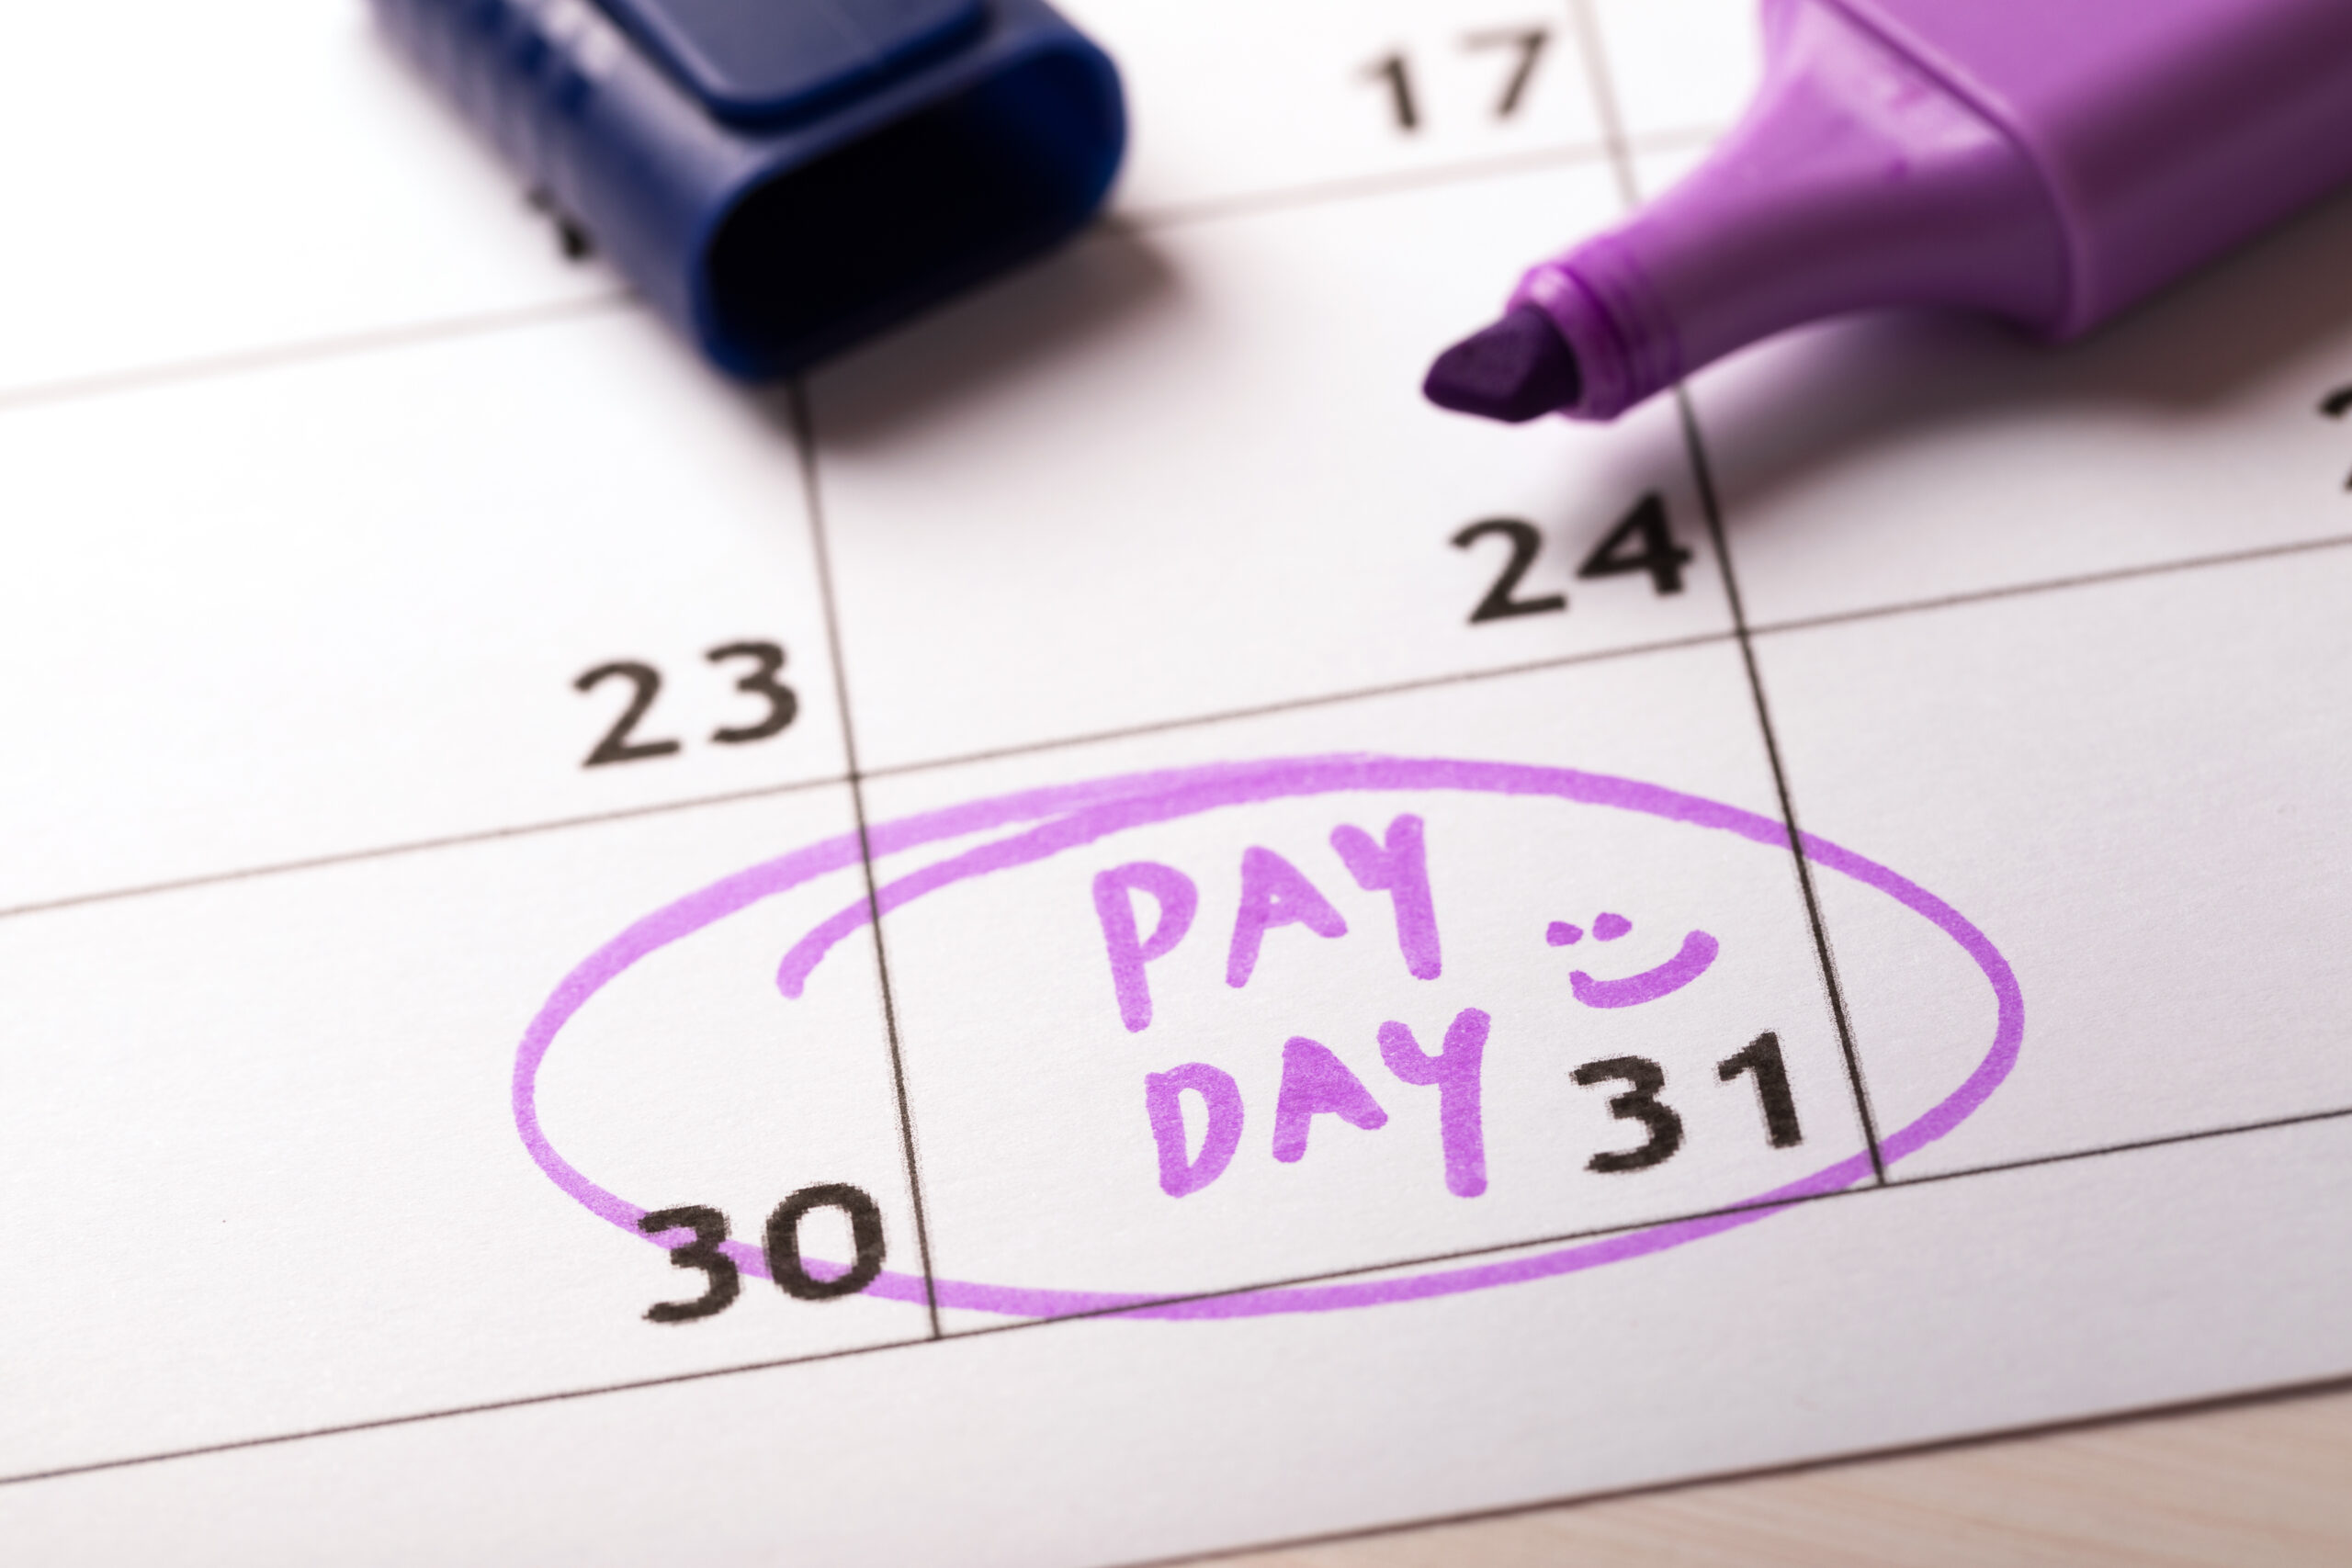 pay day written on a calendar